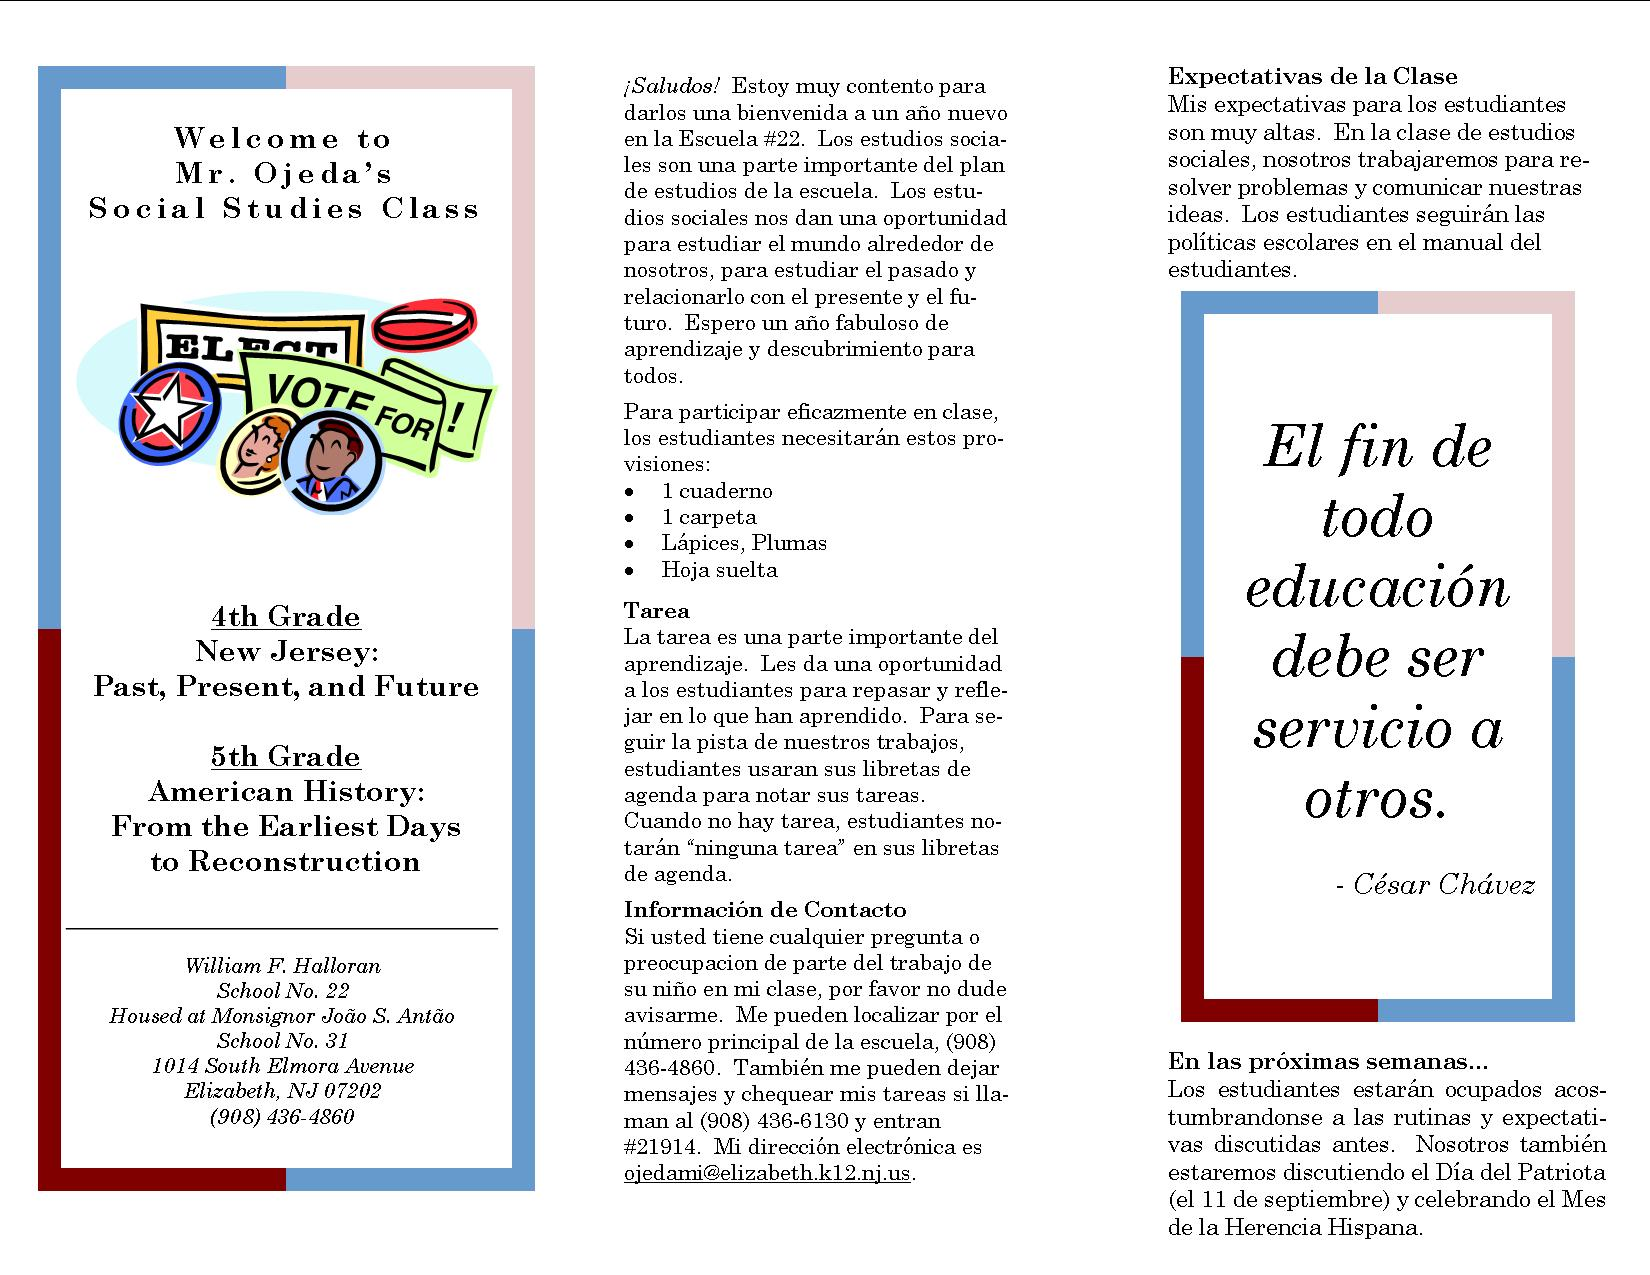 Spanish Brochure Examples Ideal Vistalist Co